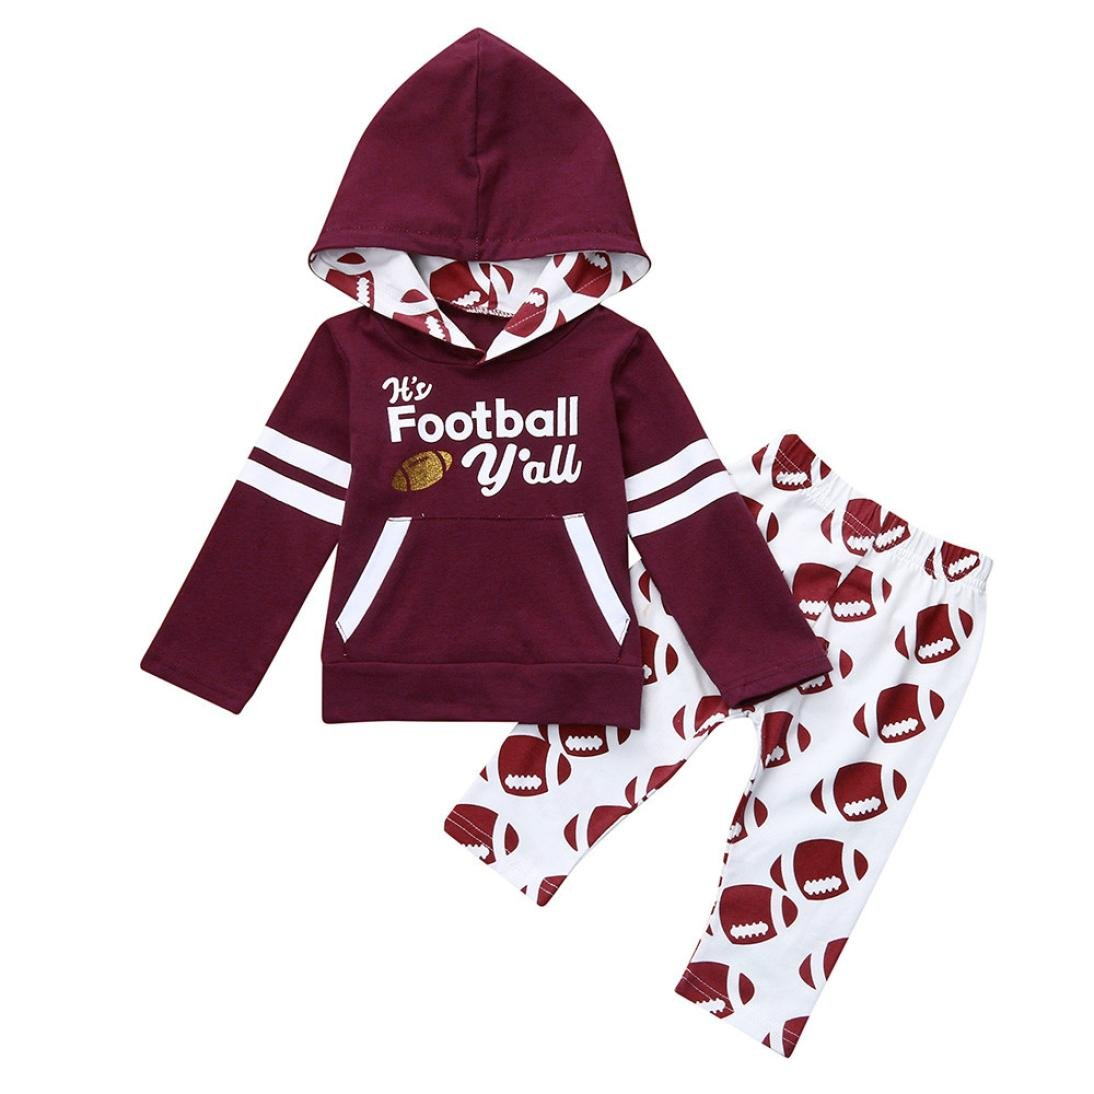 Staron Toddle Kids Baby Football Outfits Unisex Tops+Pant Hoodie Infant Clothes Set